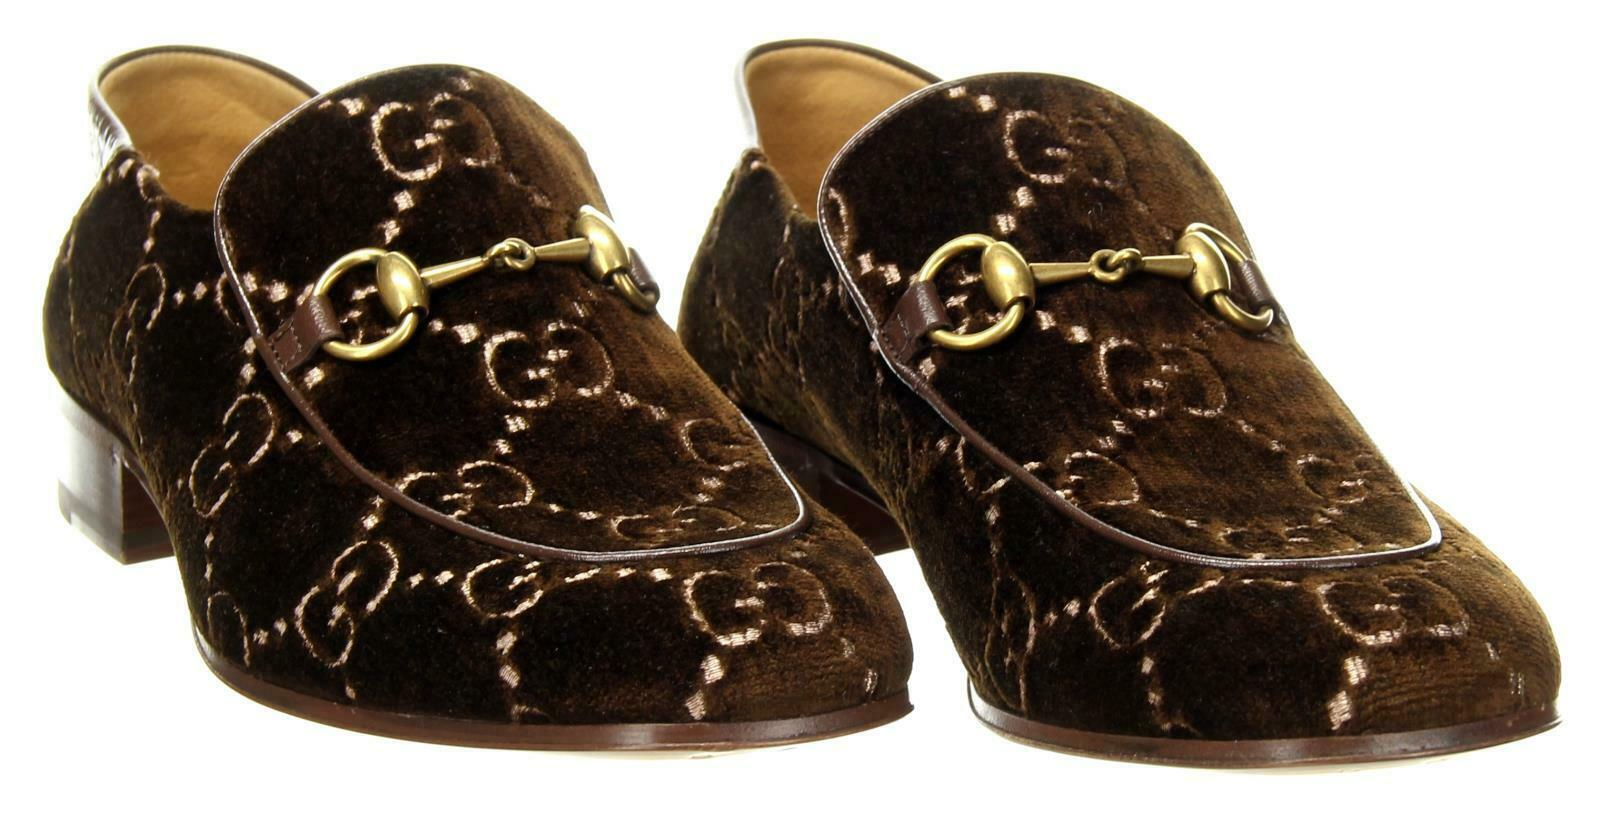 ee6a5c4f3bc Gucci Men s Quentin Horsebit Buckle Velvet Loafers Shoes Brown US 8 Gucci  Size 7